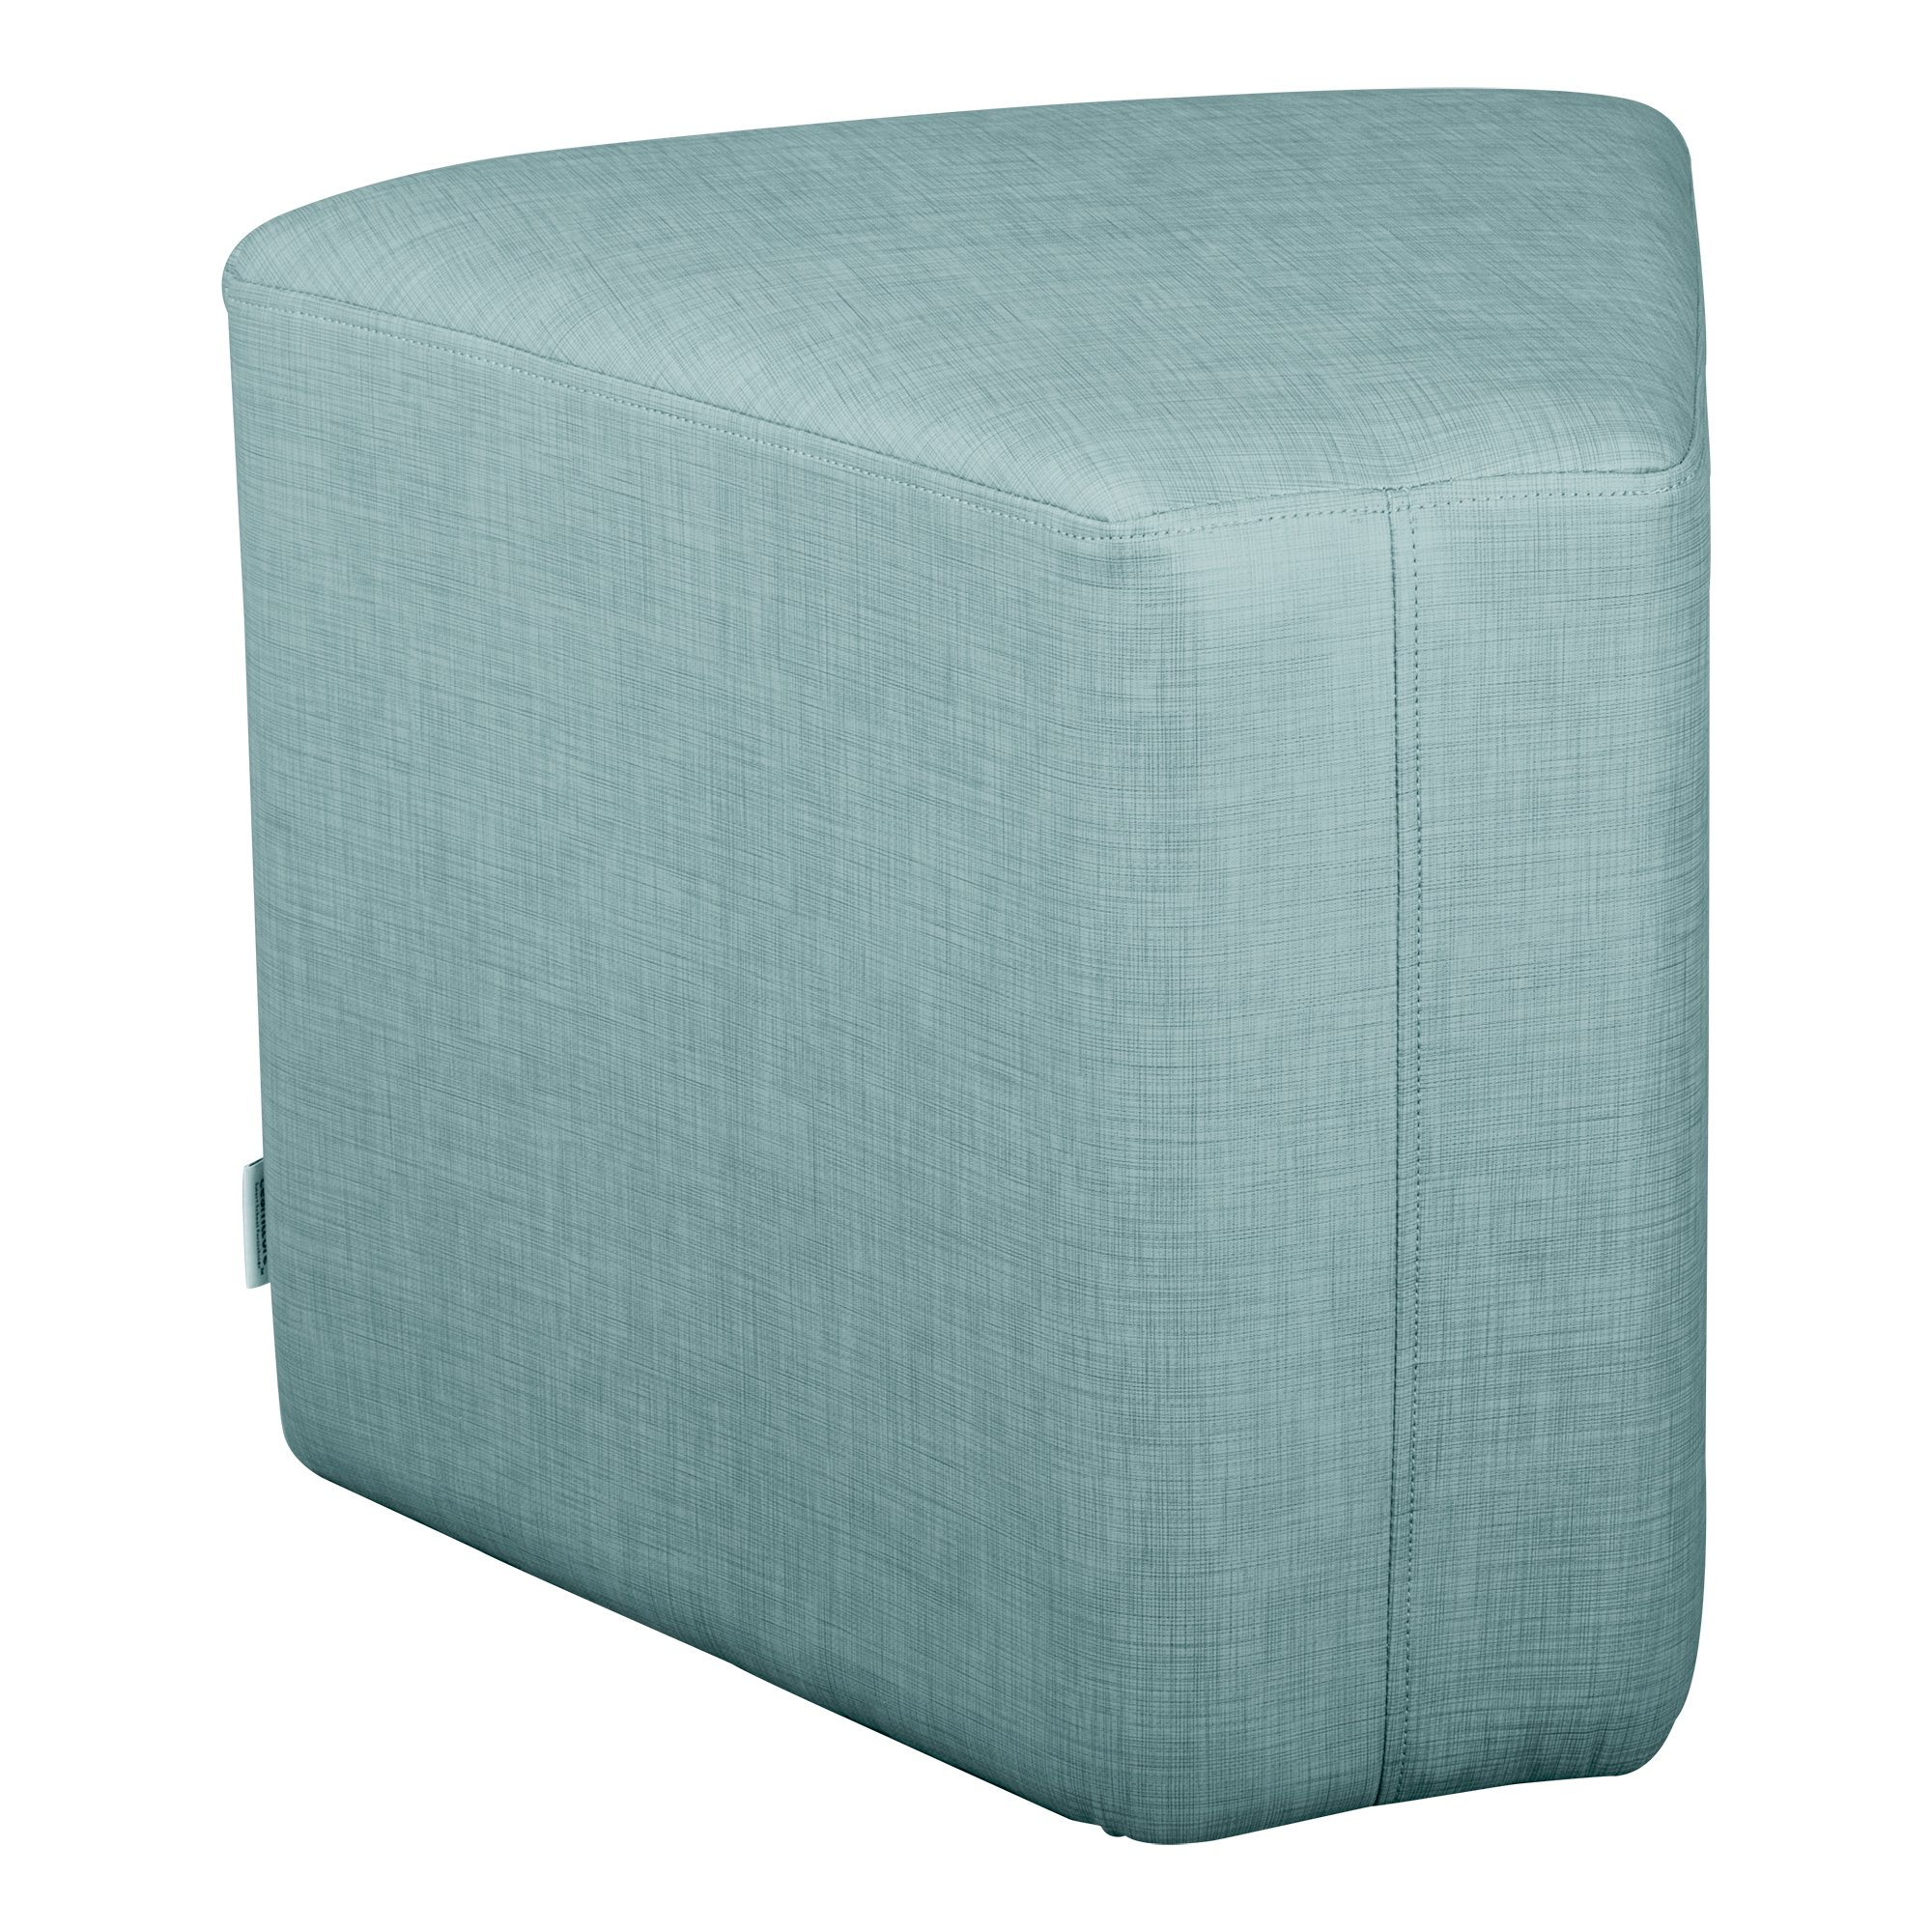 "Shapes Series II Structured Vinyl Soft Seating with Durable Frame - Wedge Stool 18""H- Blue Crosshatch"